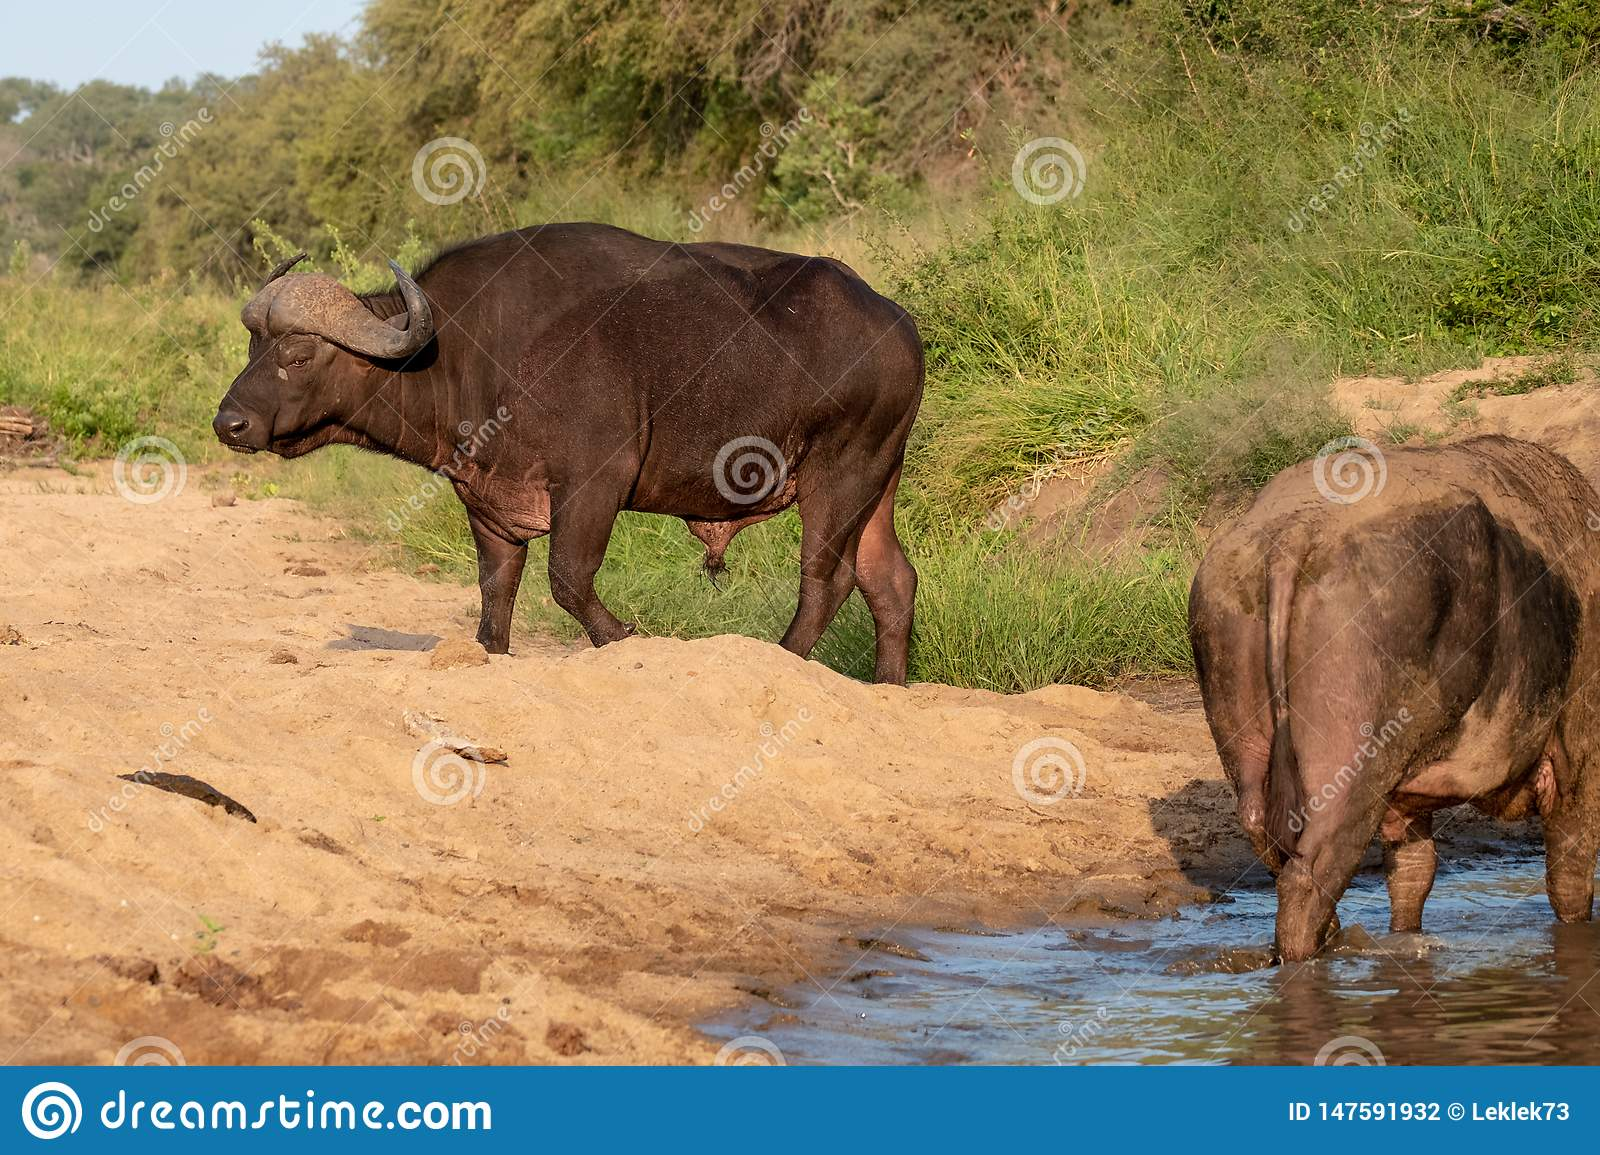 African Buffalo by the water in the late afternoon sun, photographed at Kruger National Park in South Africa.